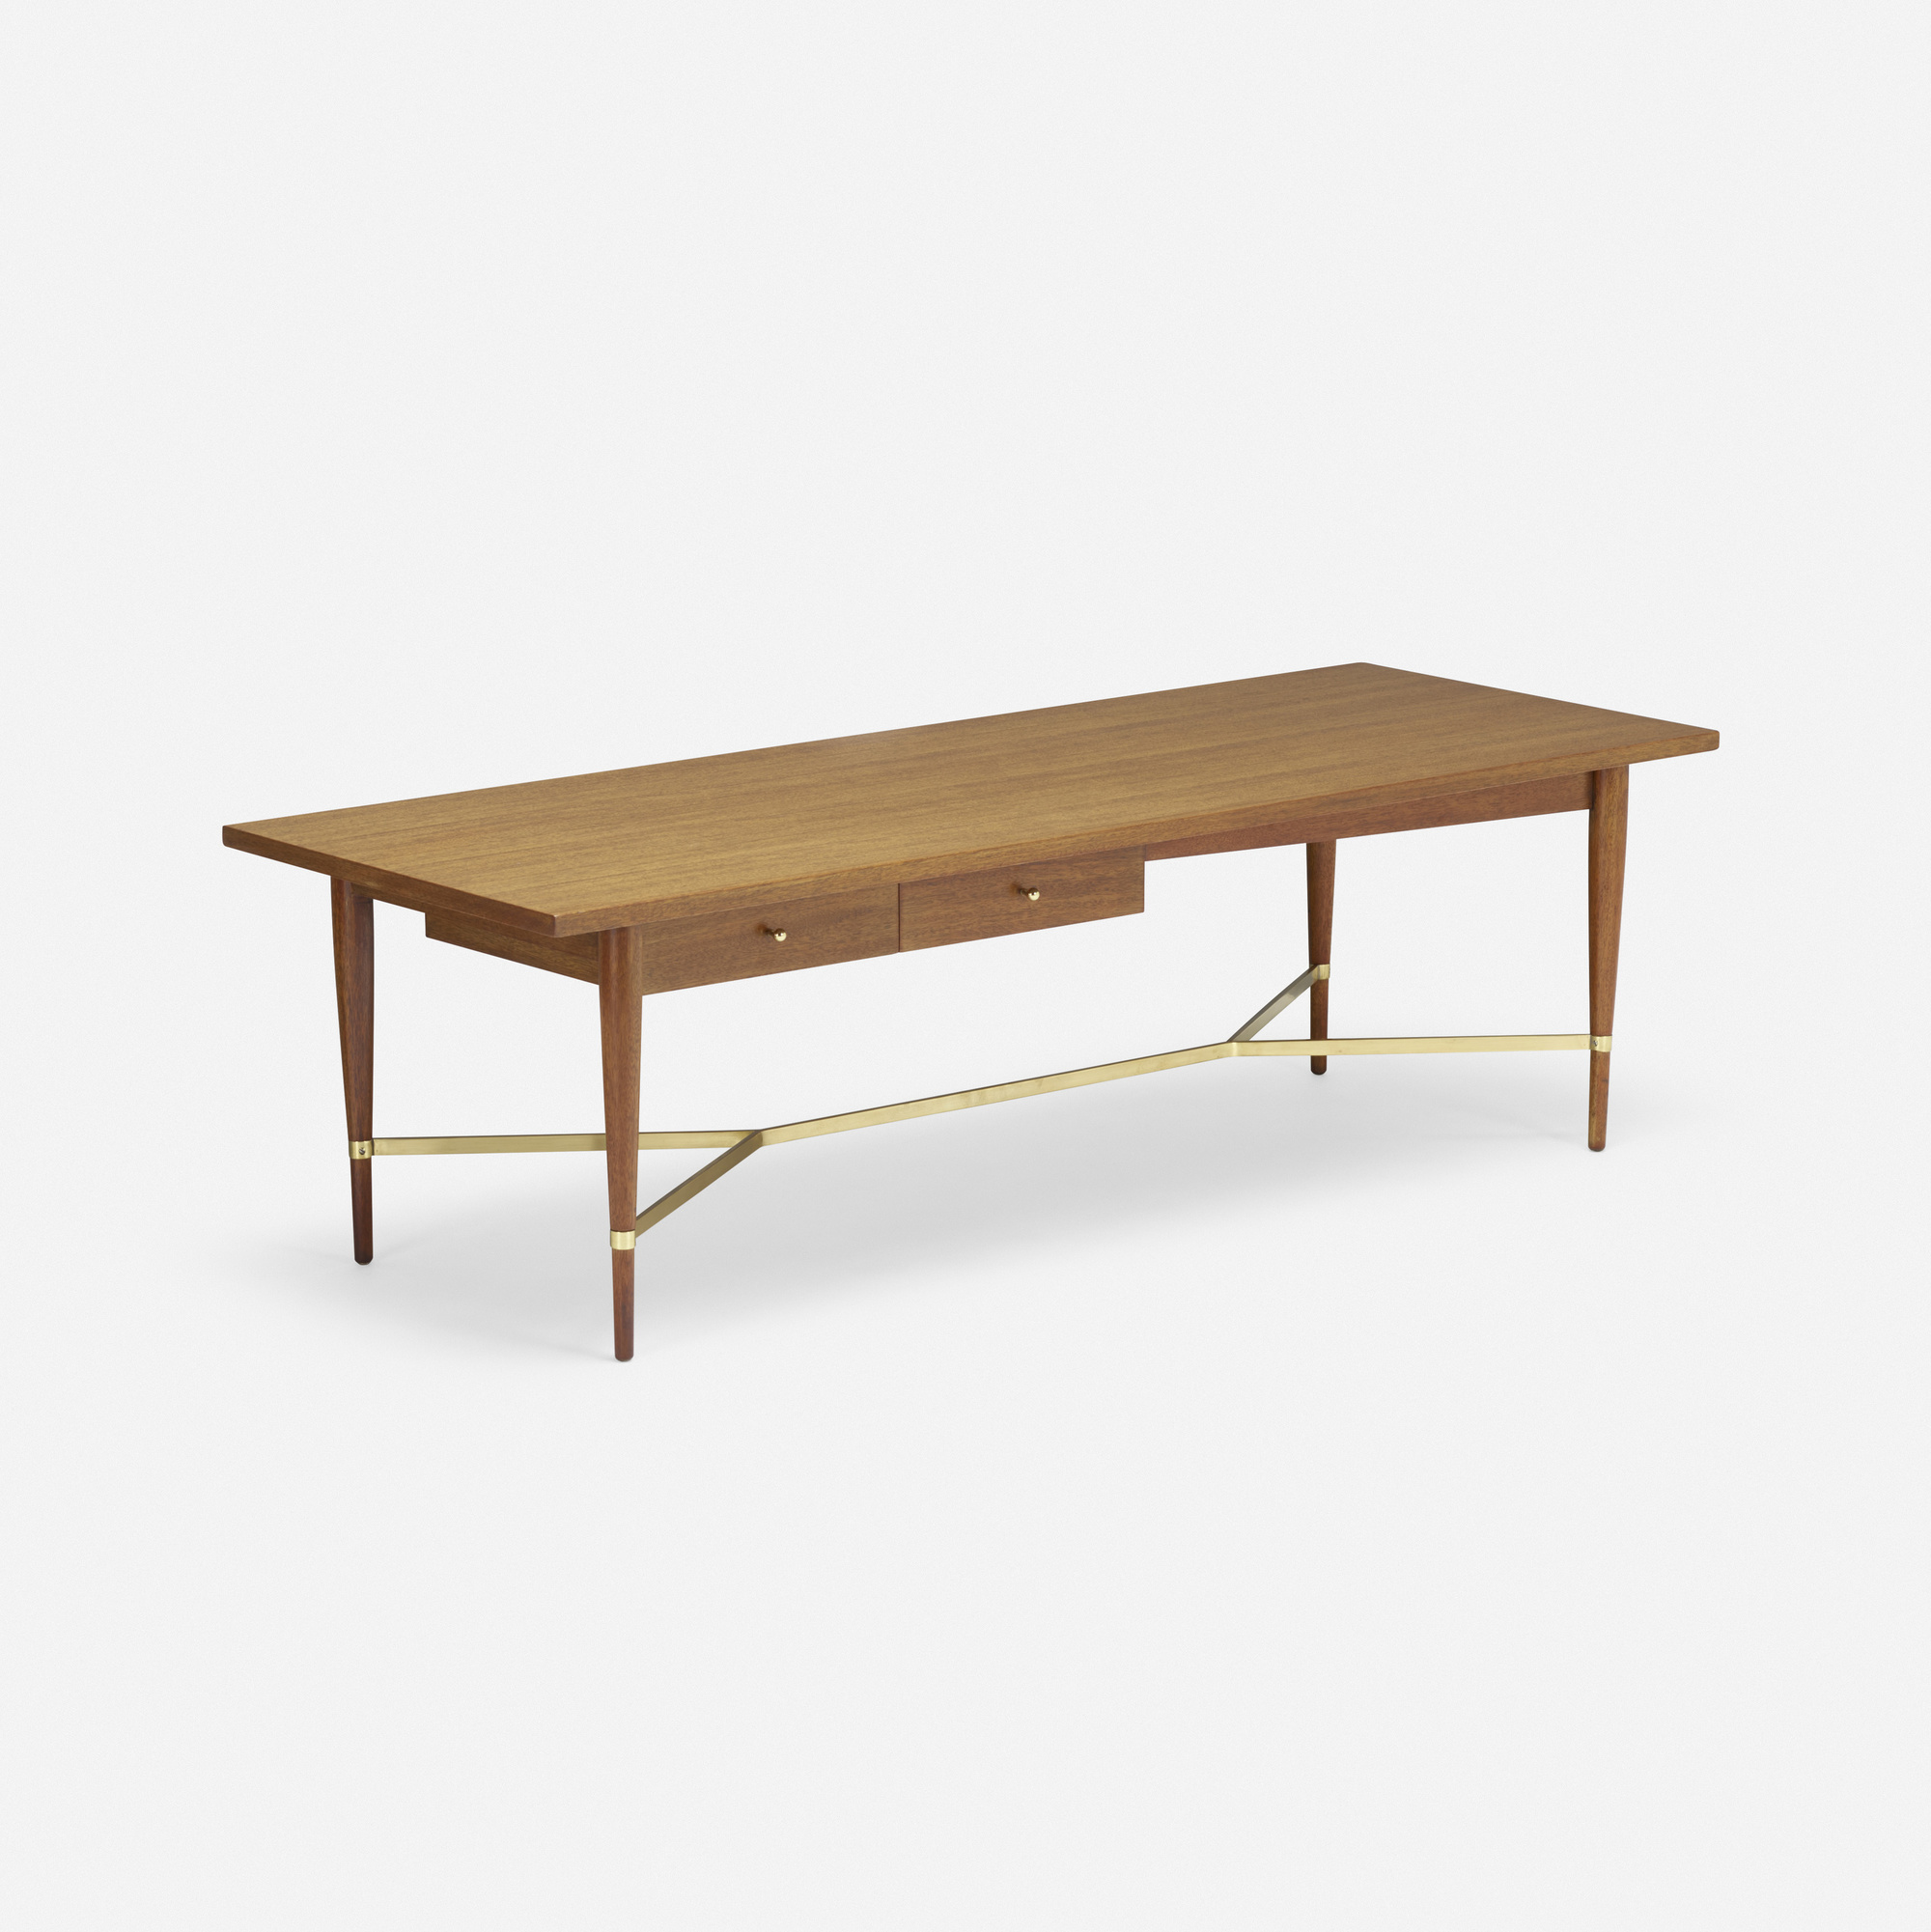 333: Paul McCobb / Connoisseur Collection coffee table (1 of 2)